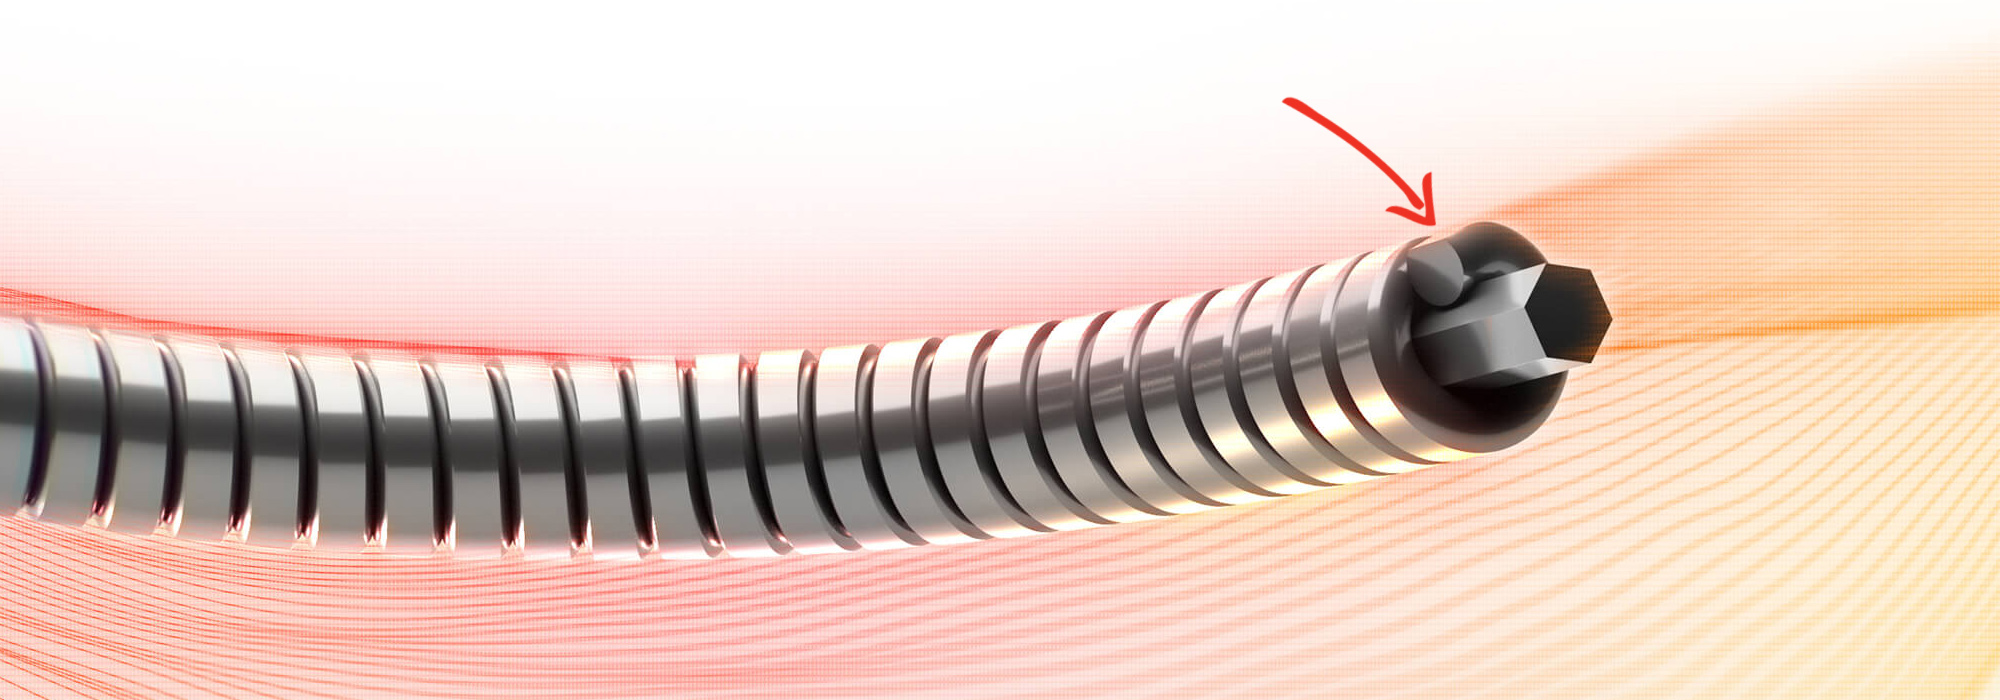 A visual representation of the 'grinding' process and the effect it has on the outer winding